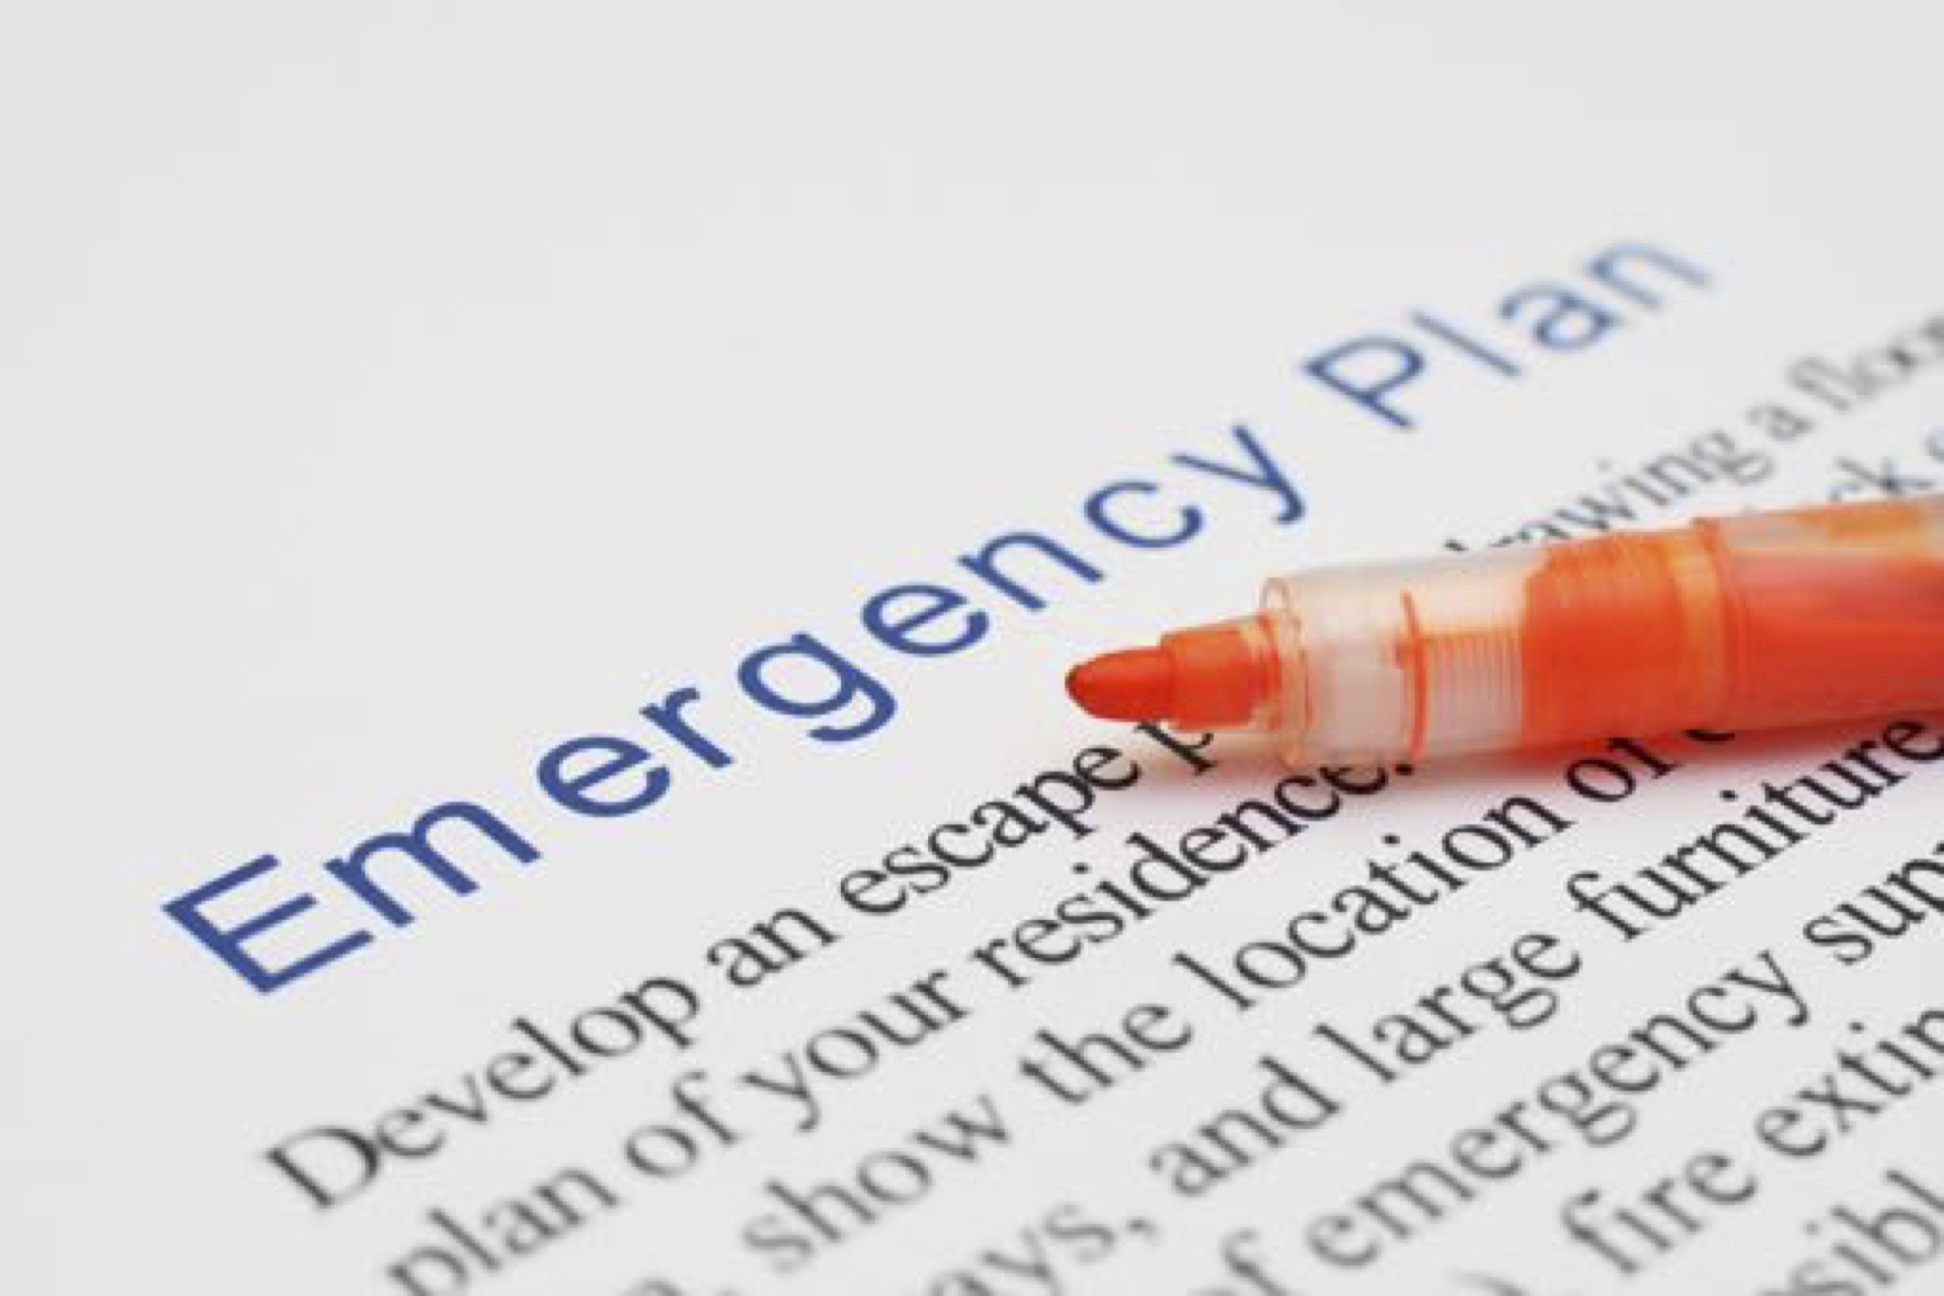 Building an Emergency Preparedness Plan: Policies and Procedures